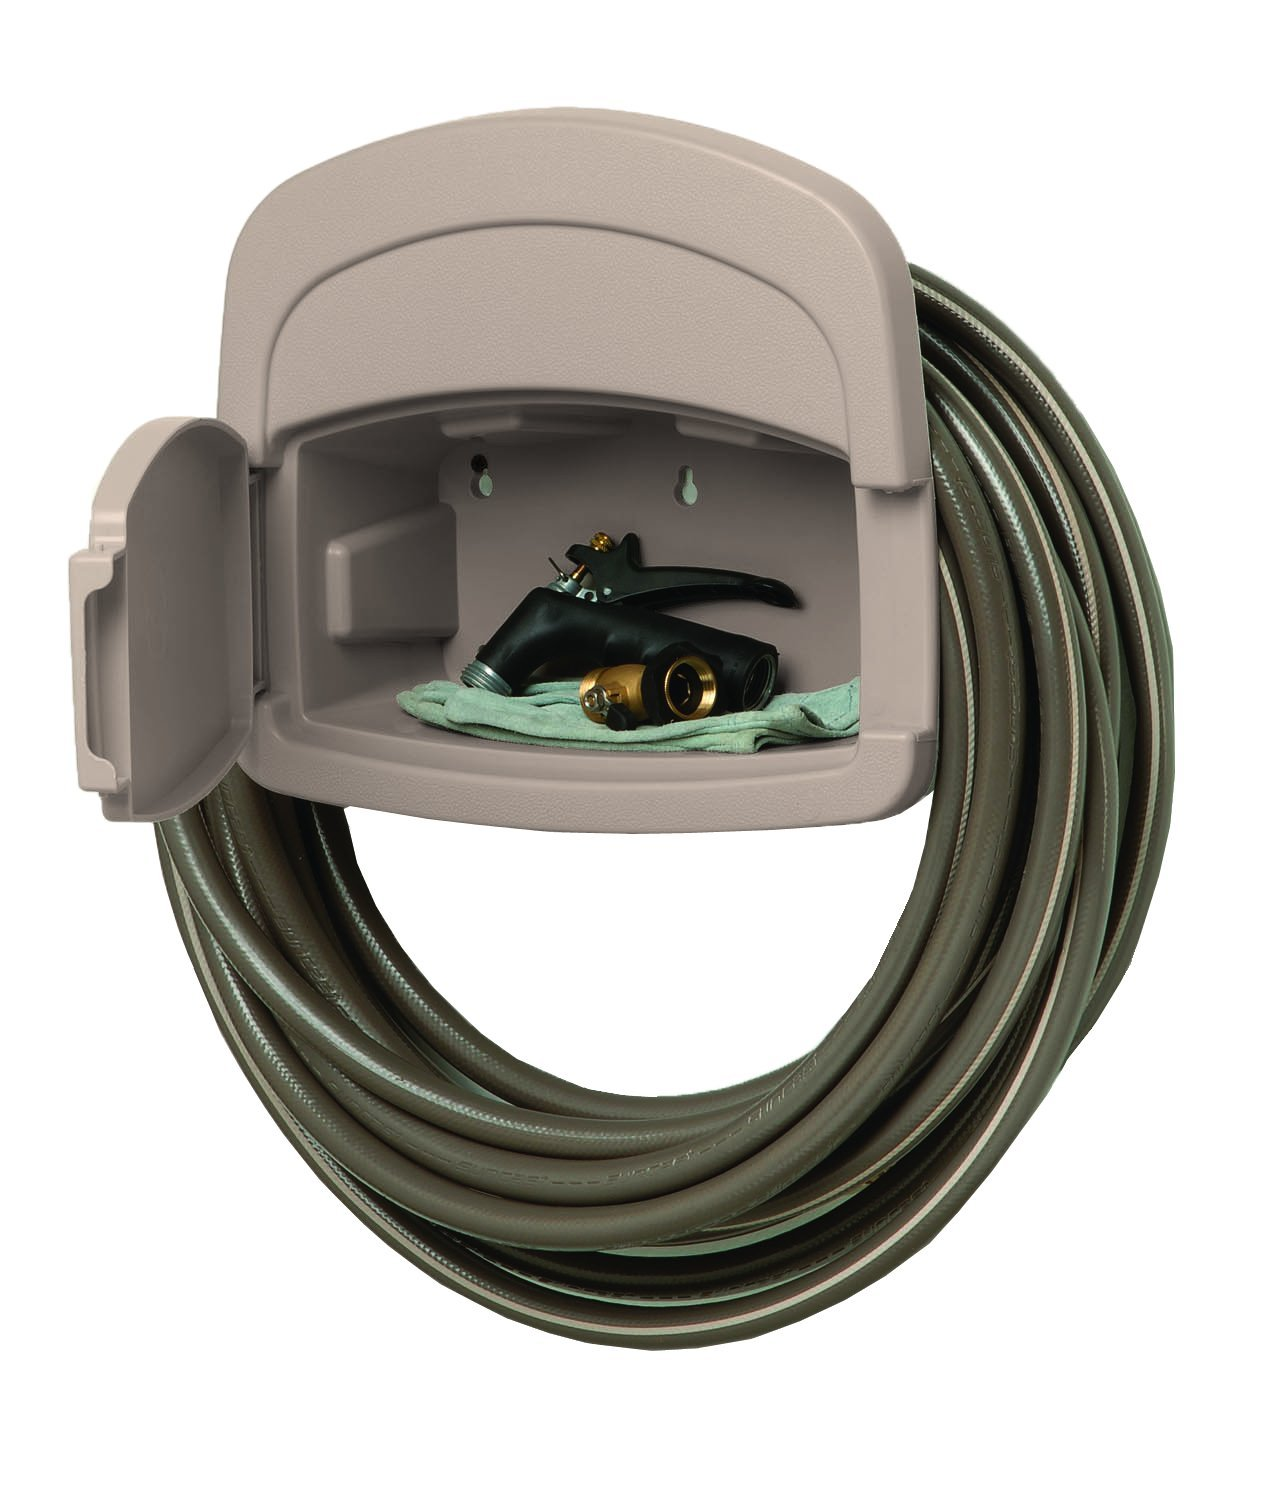 Merveilleux Amazon.com : Suncast DHH150 Deluxe Garden Hose Hangout With 150 Foot Hose  Capacity And Enclosed Storage Compartment, Taupe : Hose Hanger : Garden U0026  Outdoor